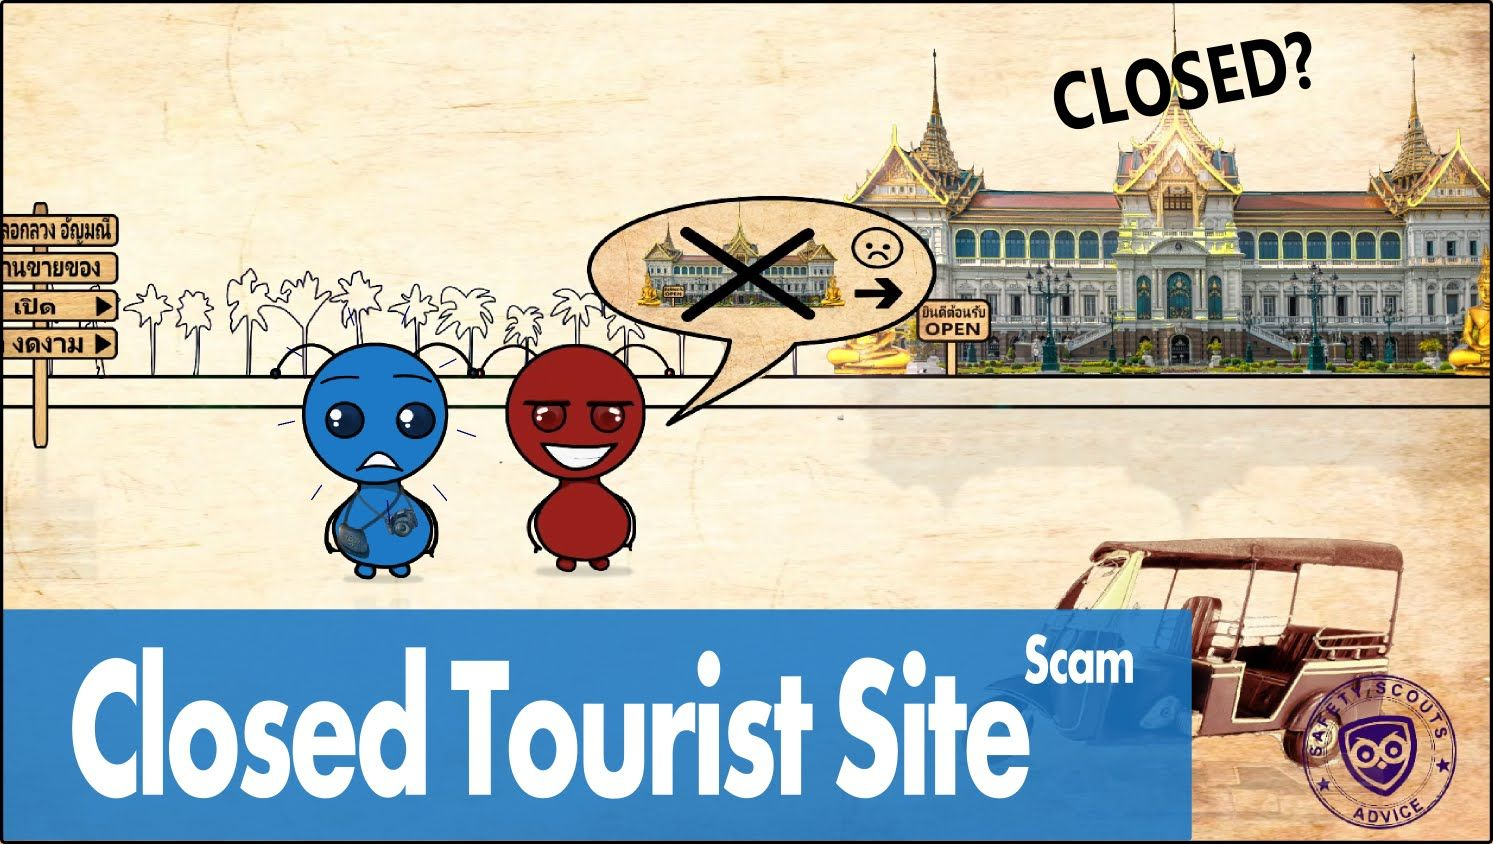 Closed Tourist Site Scam - Safety Scouts Advice - Episode 13 [HD,4K]